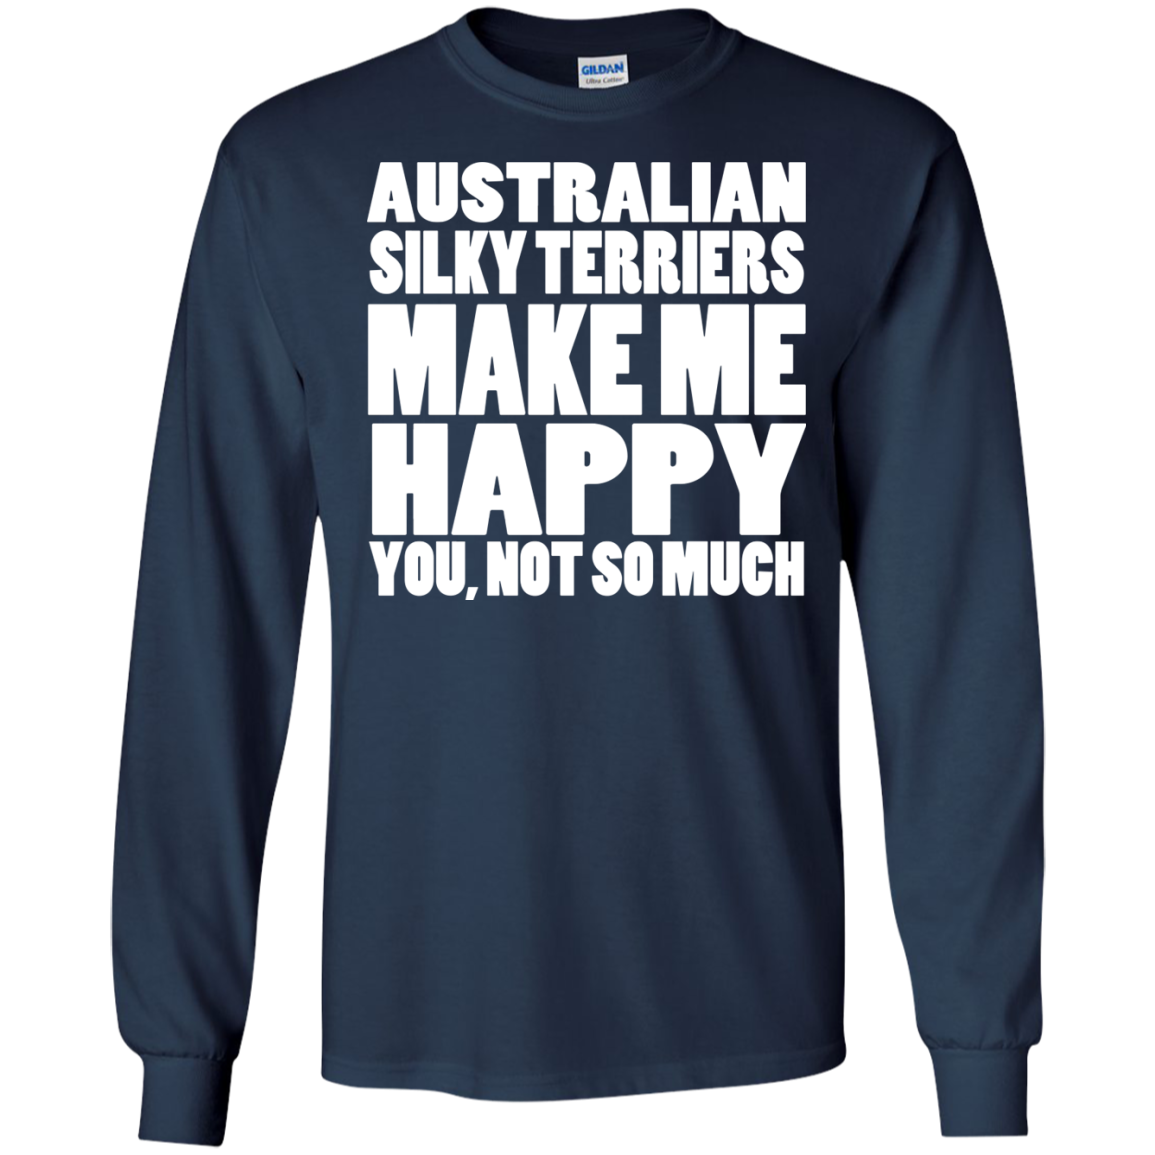 Australian Silky Terriers Make Me Happy You Not So Much Long Sleeve Tees